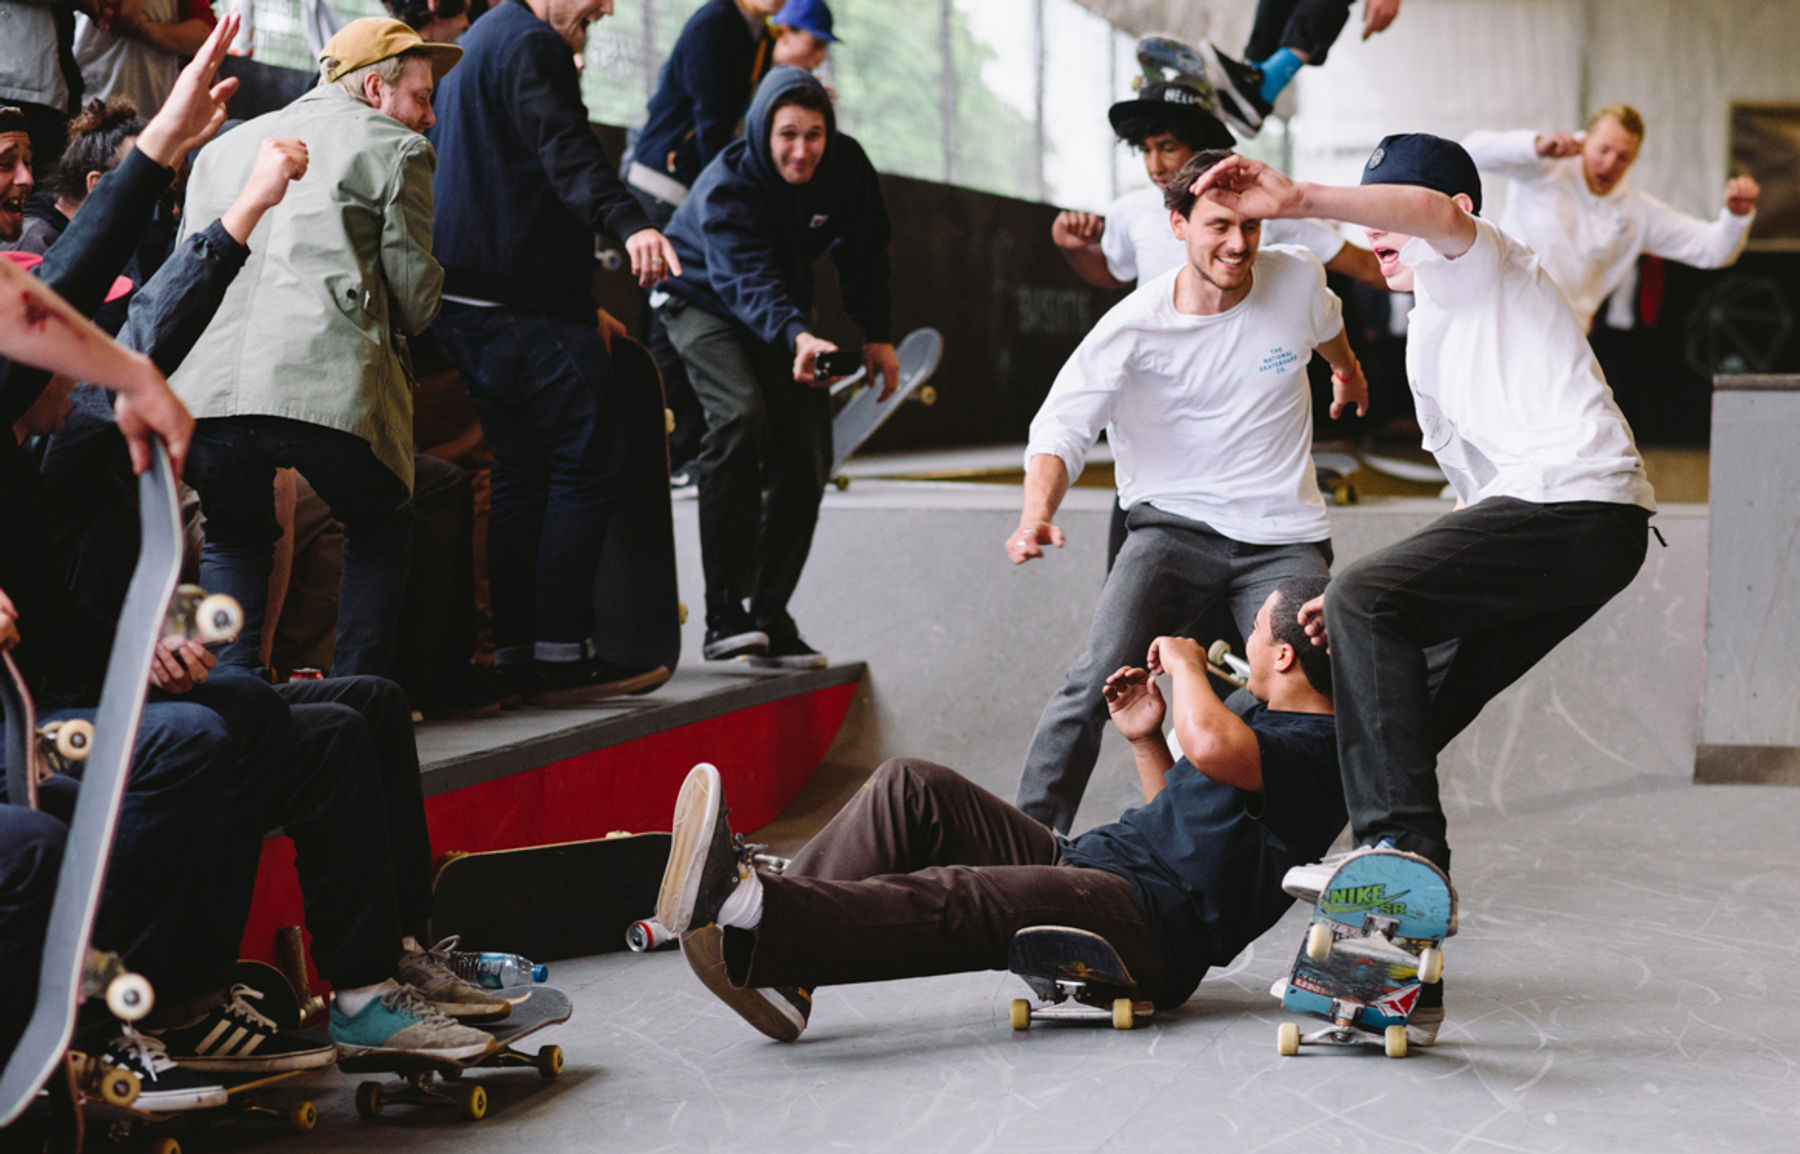 _IHC5558e-Rob-Mathieson-Reuben-Russo-Charlie-Birch-Tom-Harrison-Nike-SB-London-AM-Day-2-June-2015-Photographer-Maksim-Kalanep